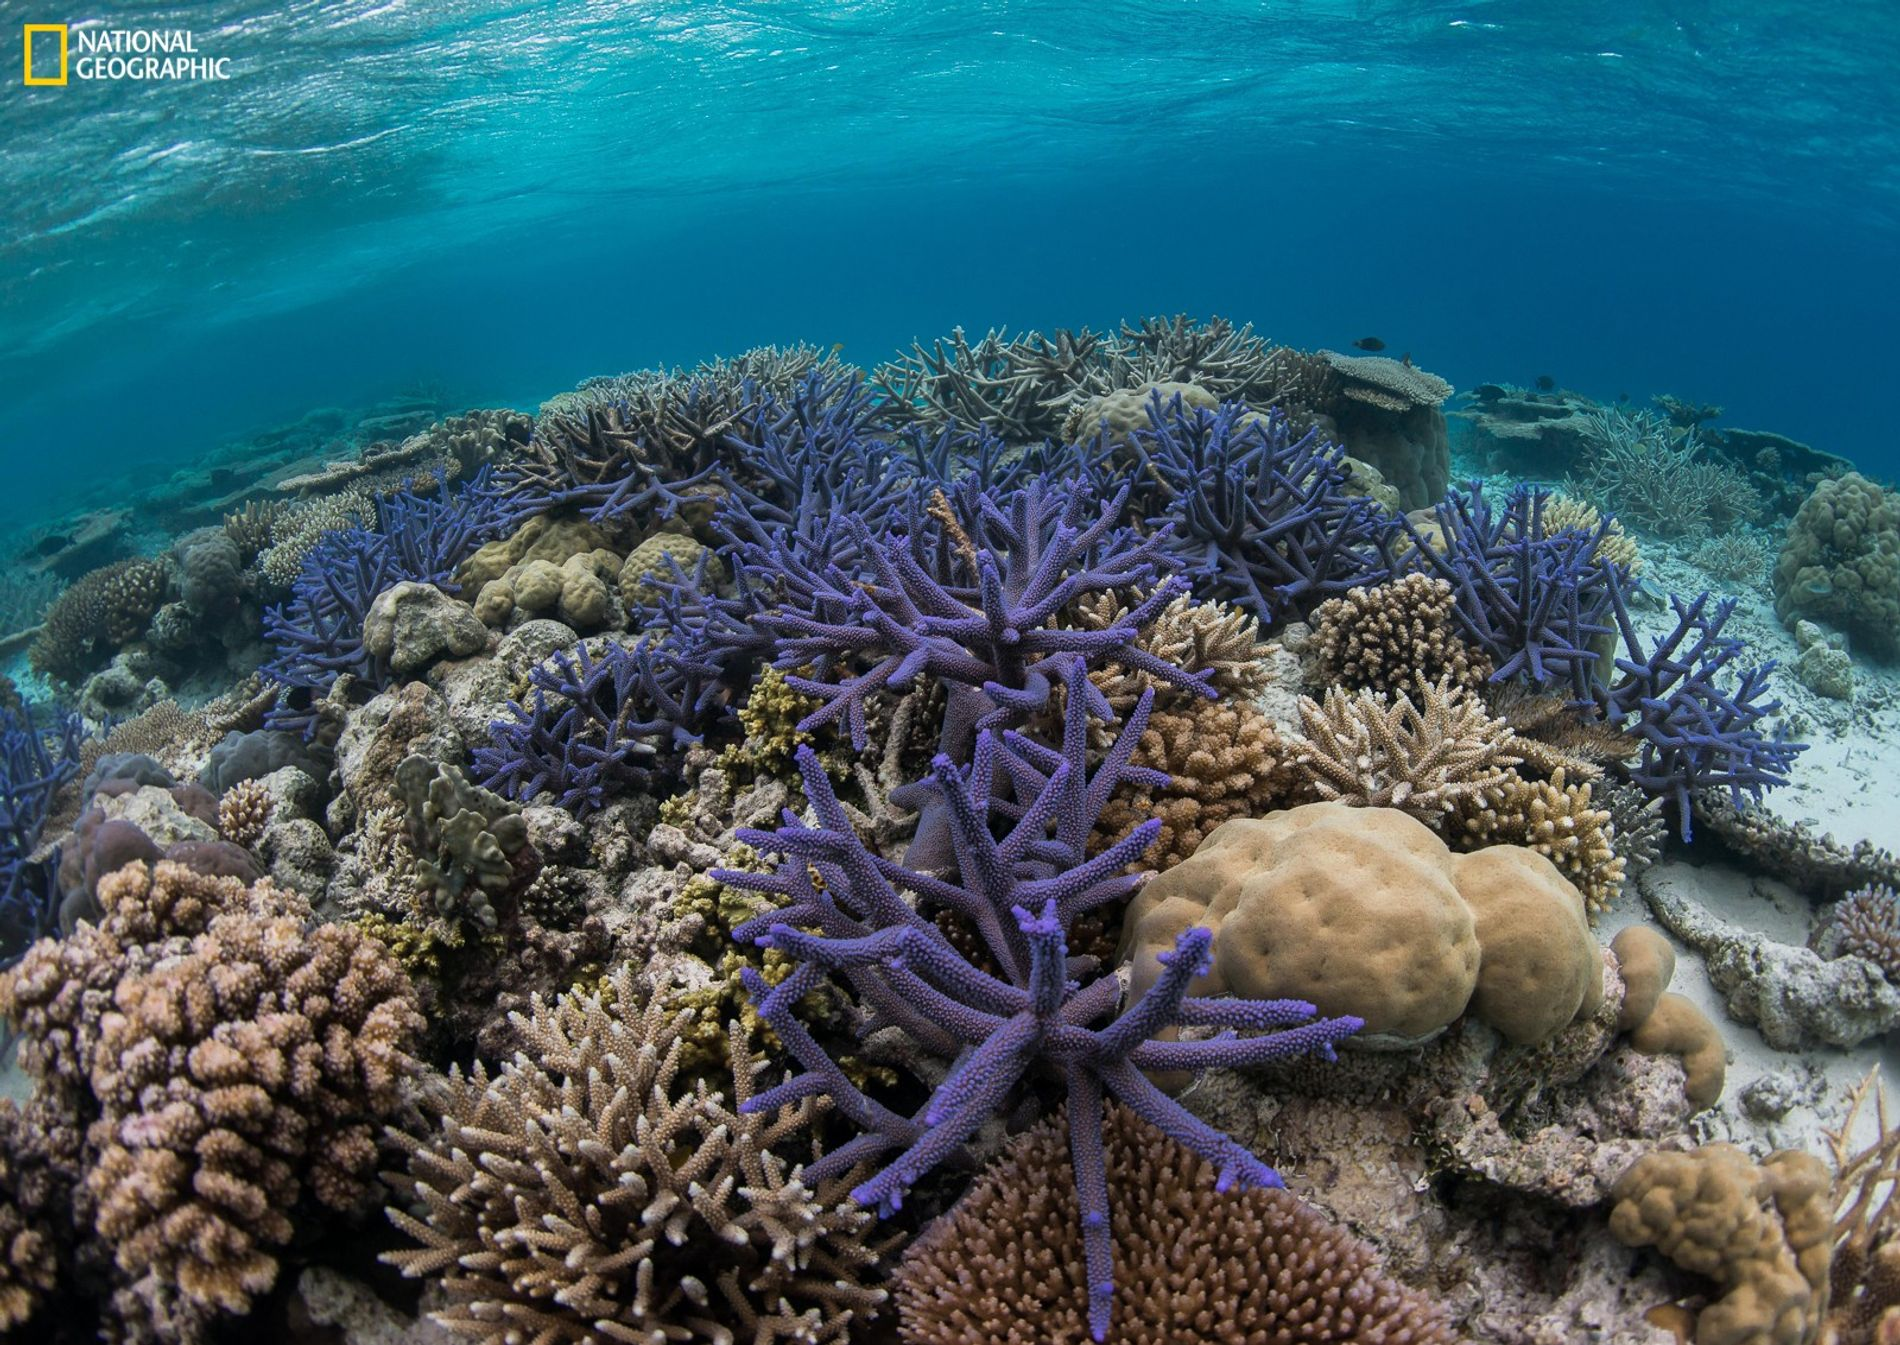 Major new initiative announced to tackle ocean's plastic pollution